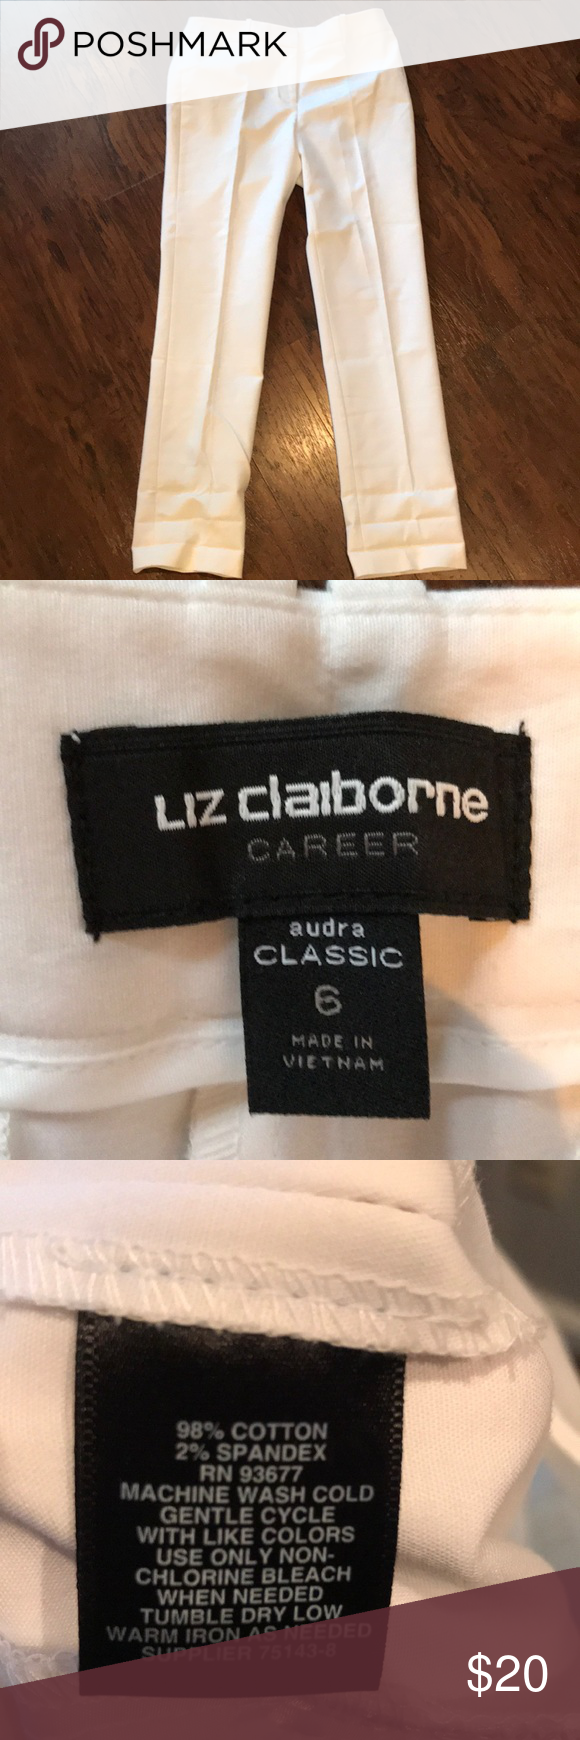 White Slacks White Slacks never worn Liz Claiborne Pants Trousers #whiteslacks White Slacks White Slacks never worn Liz Claiborne Pants Trousers #whiteslacks